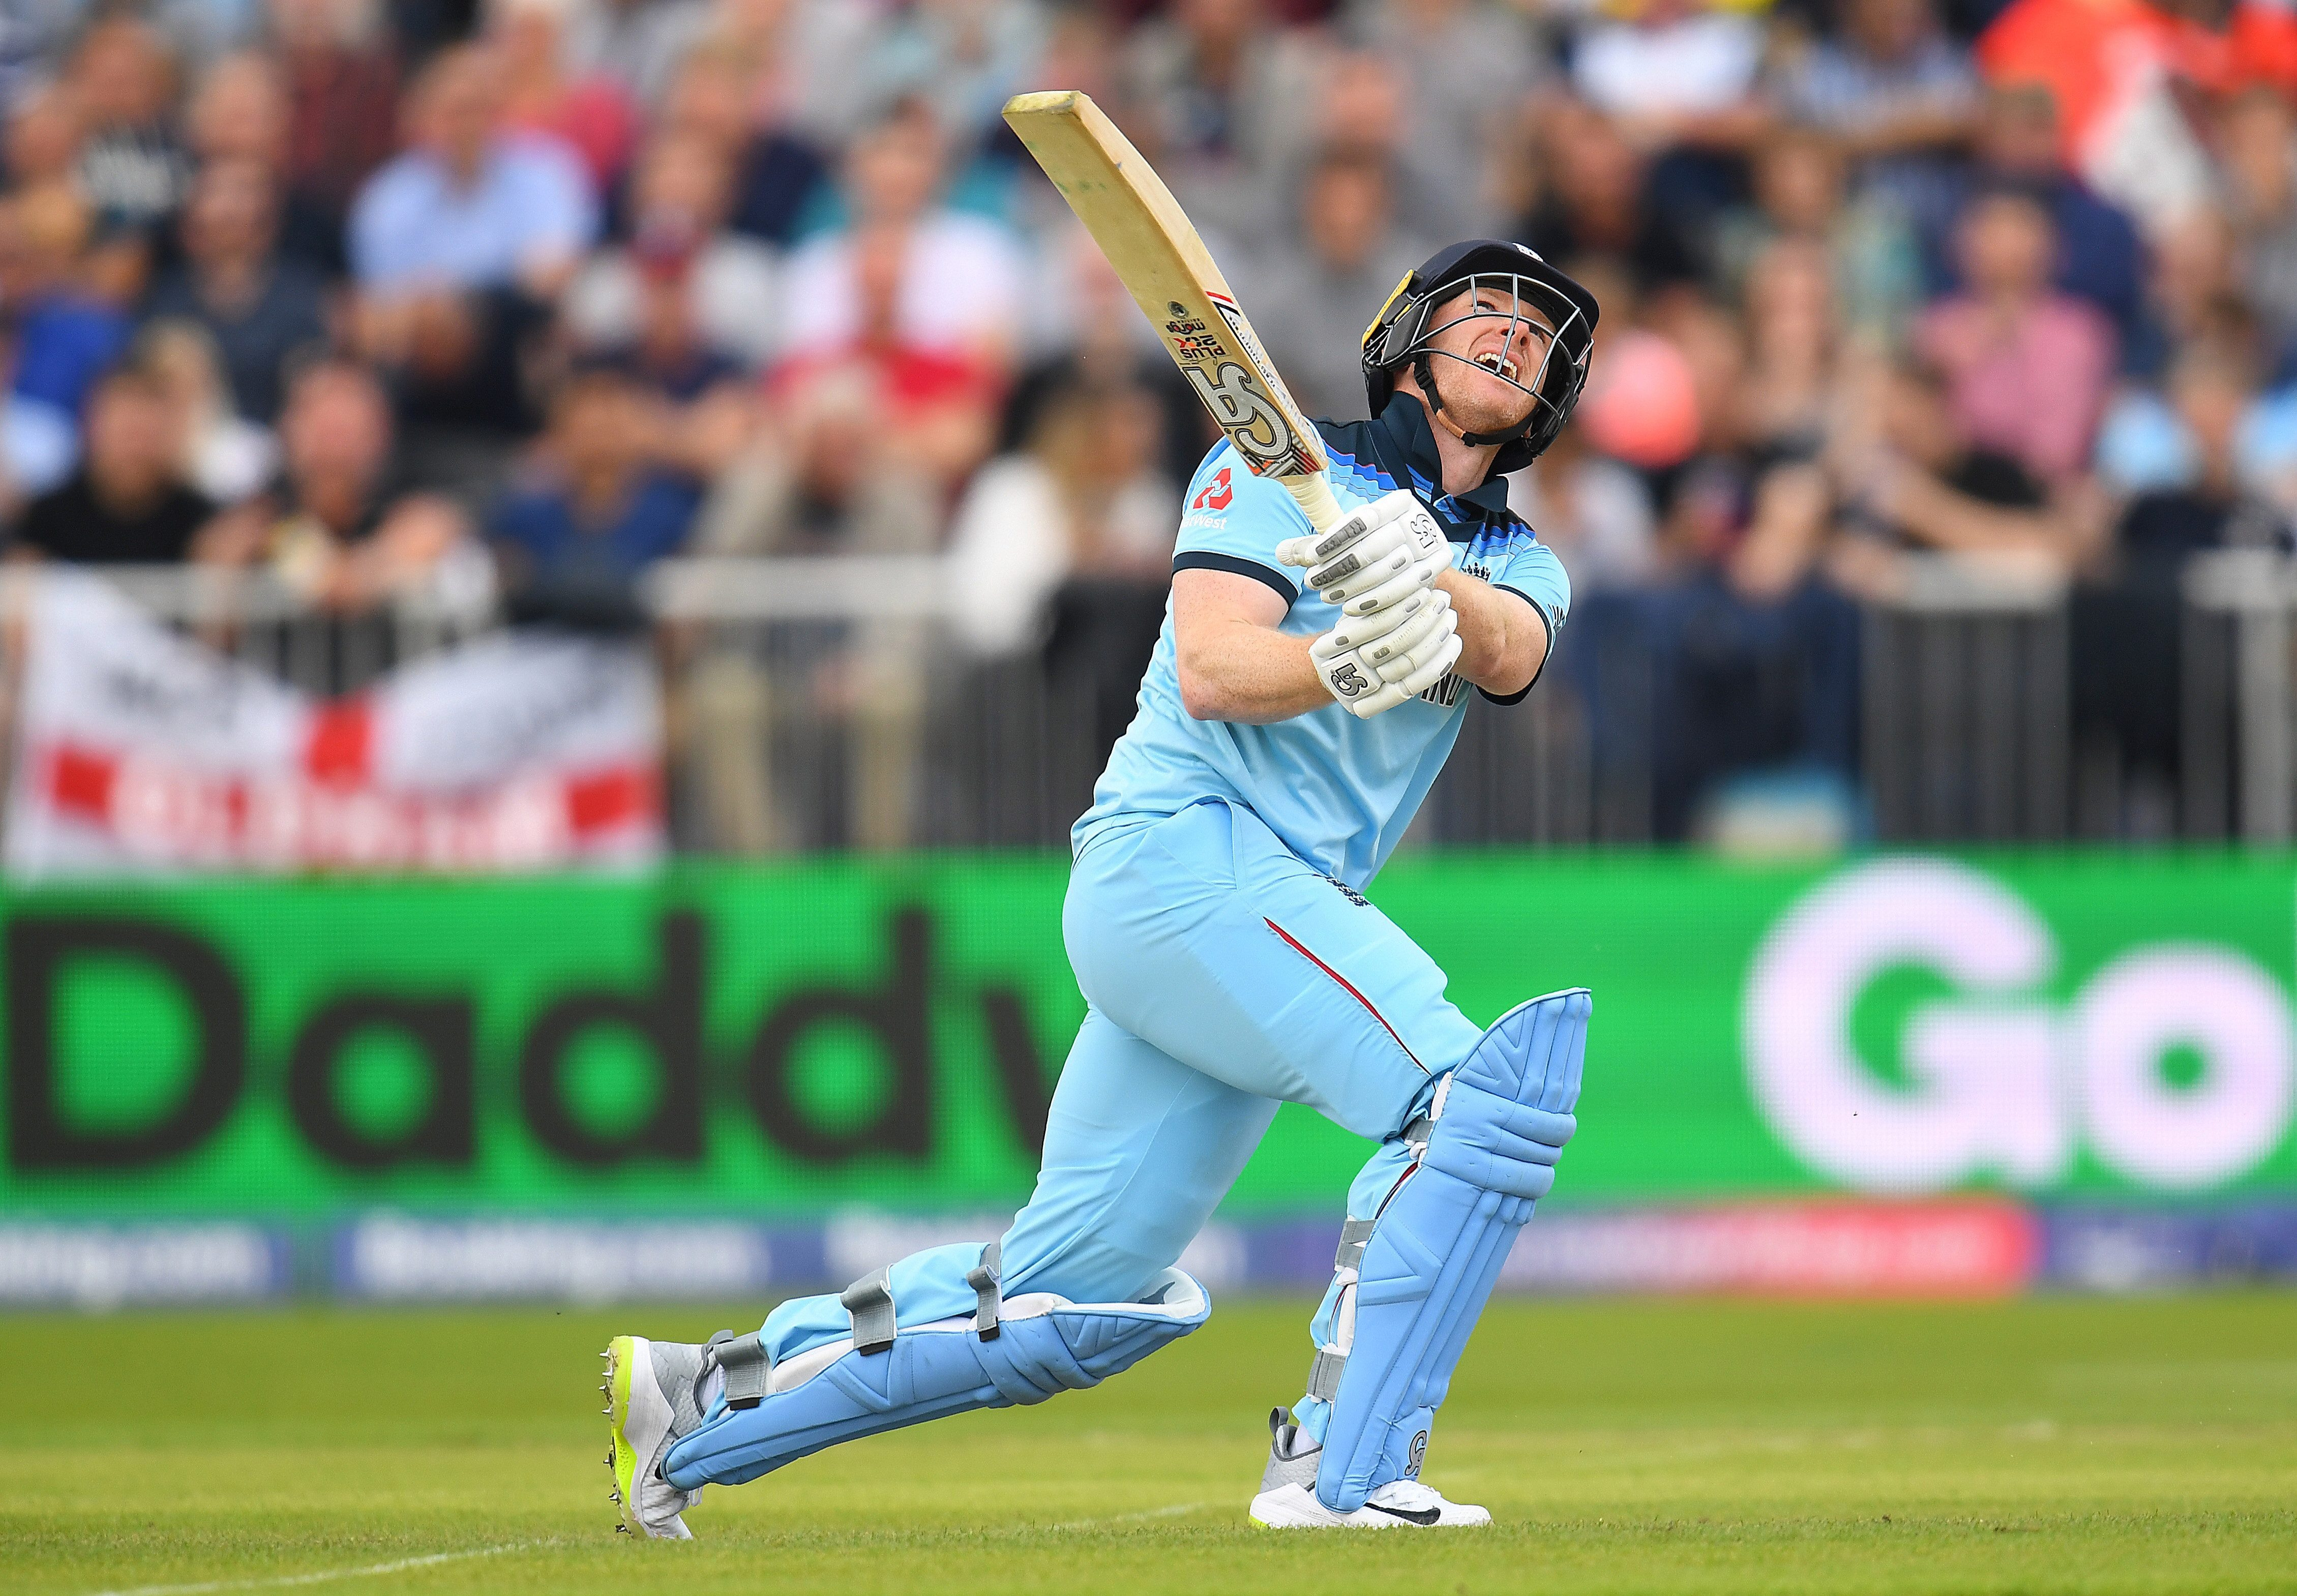 England skipper Eoin Morgan hammered 17 sixes in his 148 off 71 balls against Afghanistan at Old Trafford